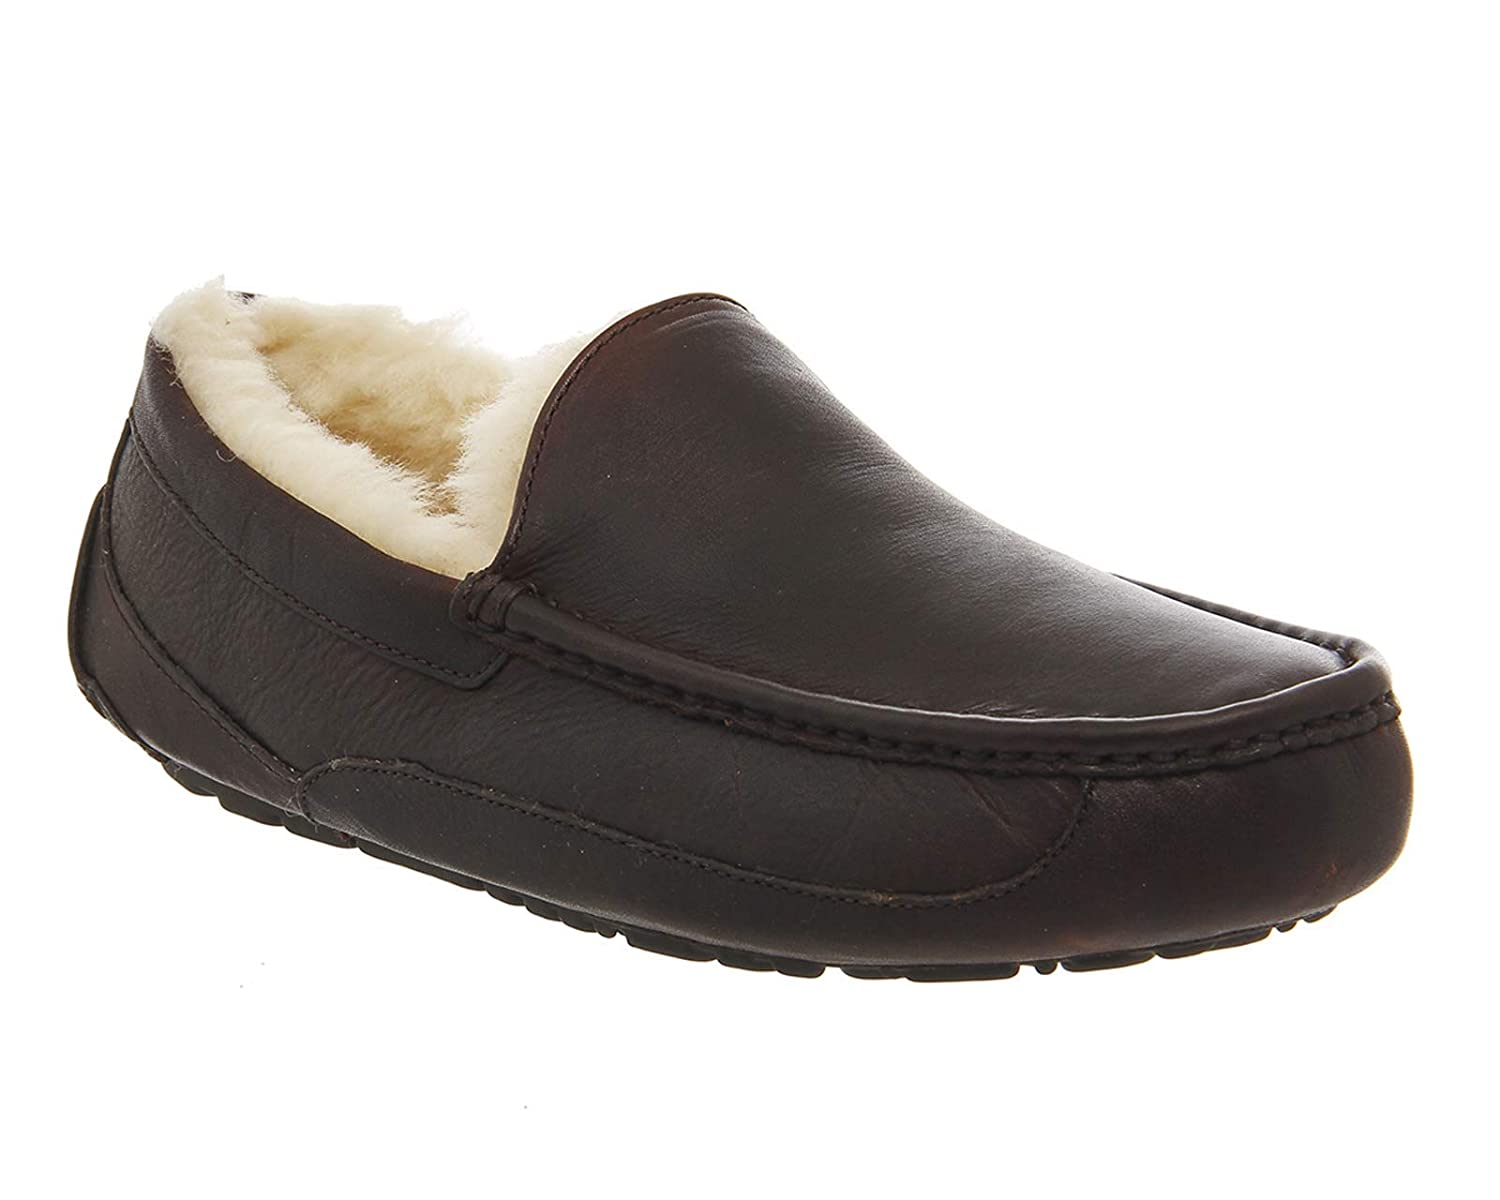 483c5d45cd3 UGG Men's Ascot Slipper